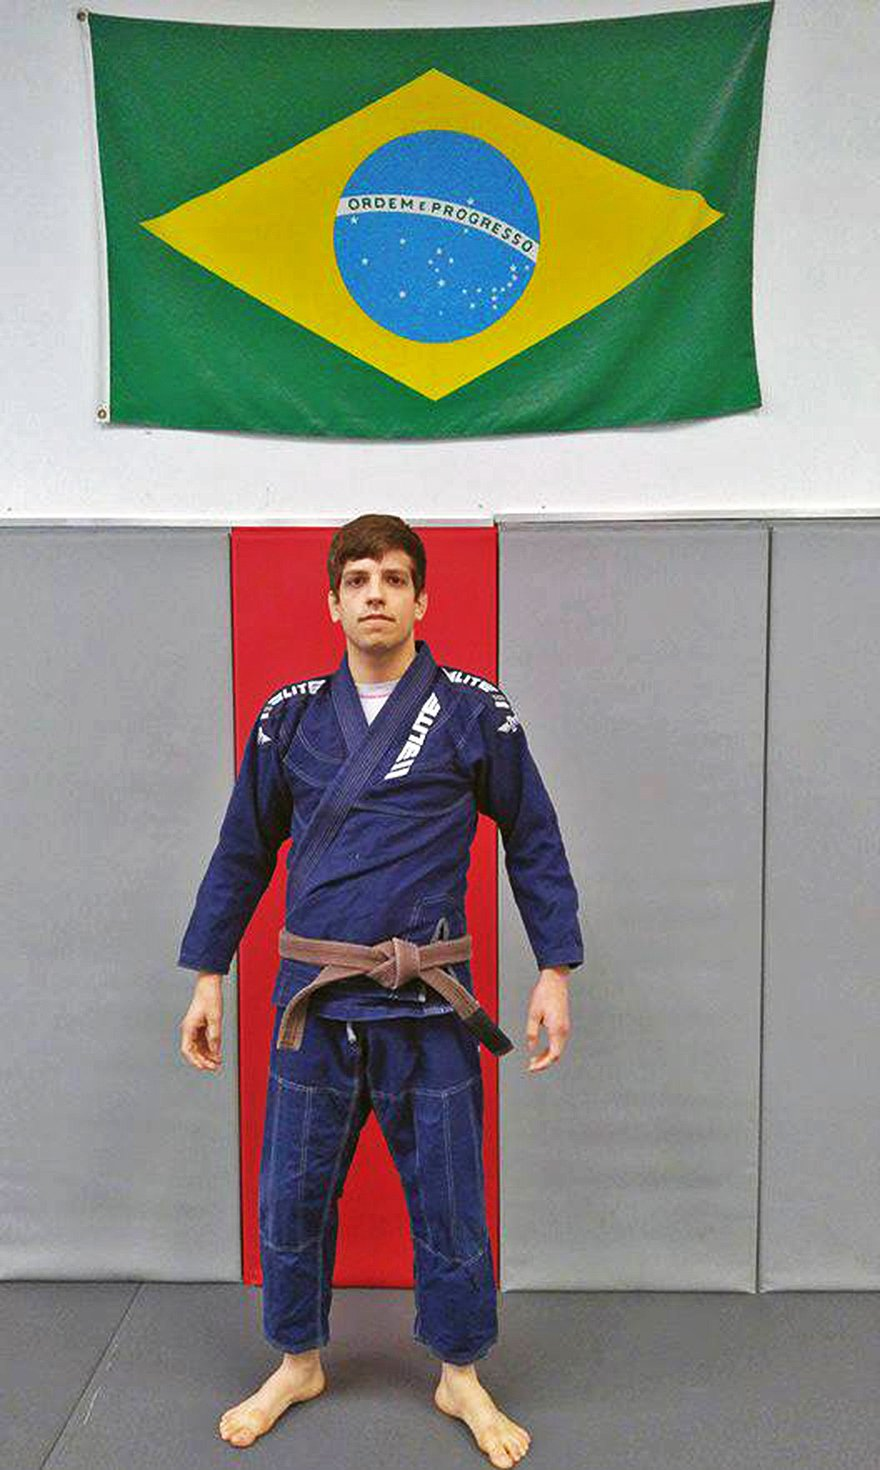 Elite Sports Team Elite Bjj Fighter Aaron Brooks Image1